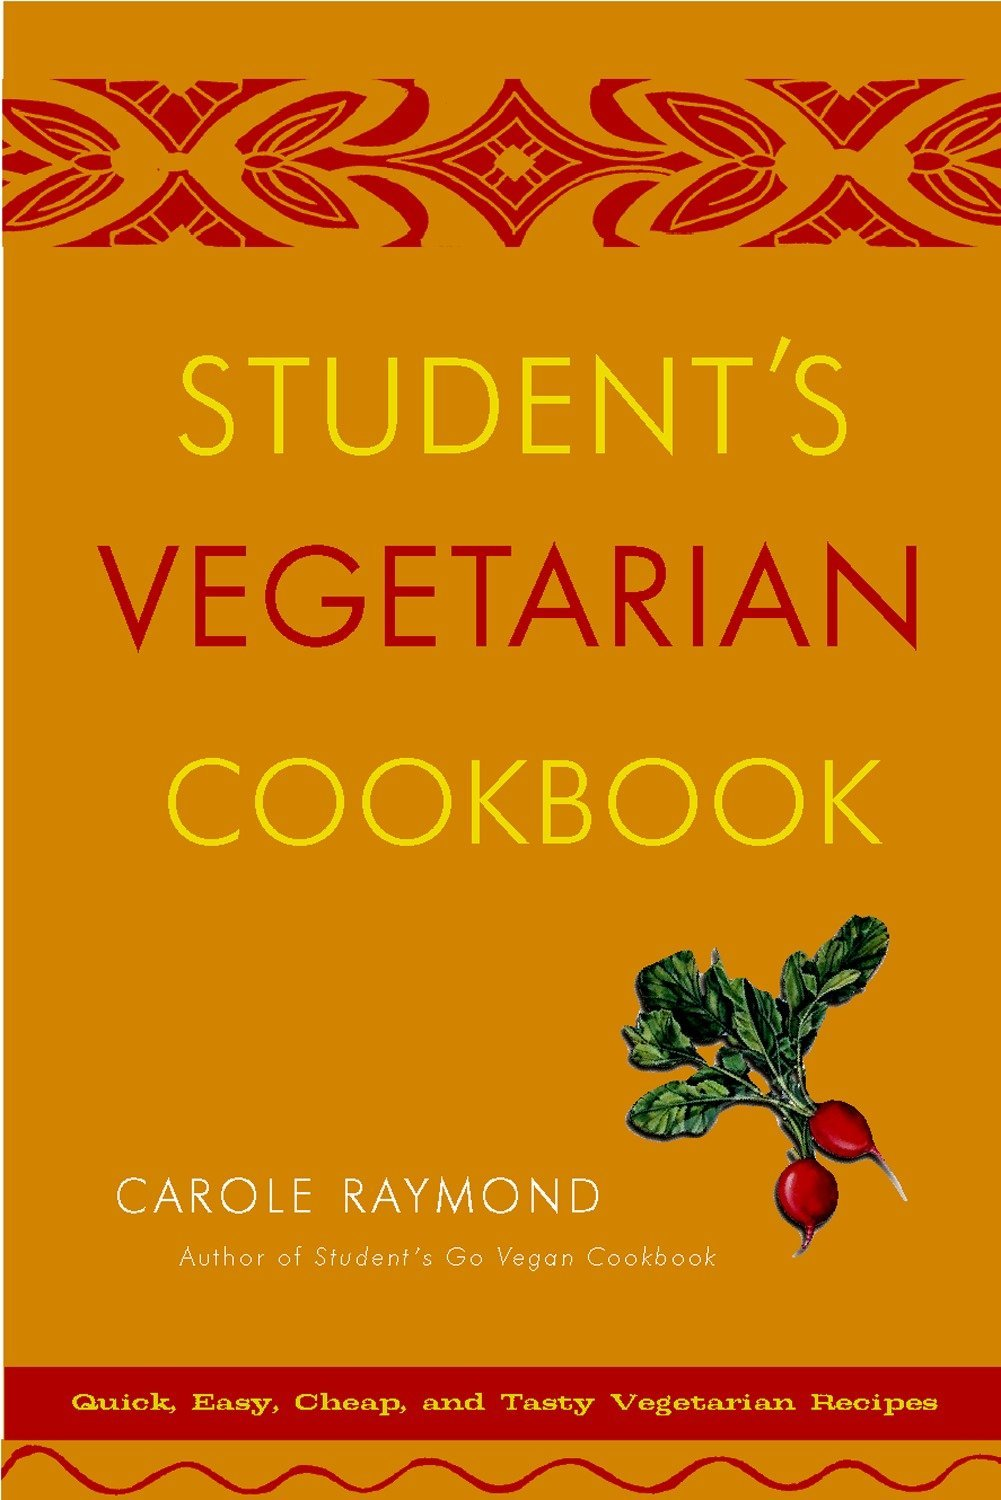 Student's Vegetarian Cookbook, Revised: Quick, Easy, Cheap, and Tasty  Vegetarian Recipes: Carole Raymond: 9780761511700: Amazon.com: Books